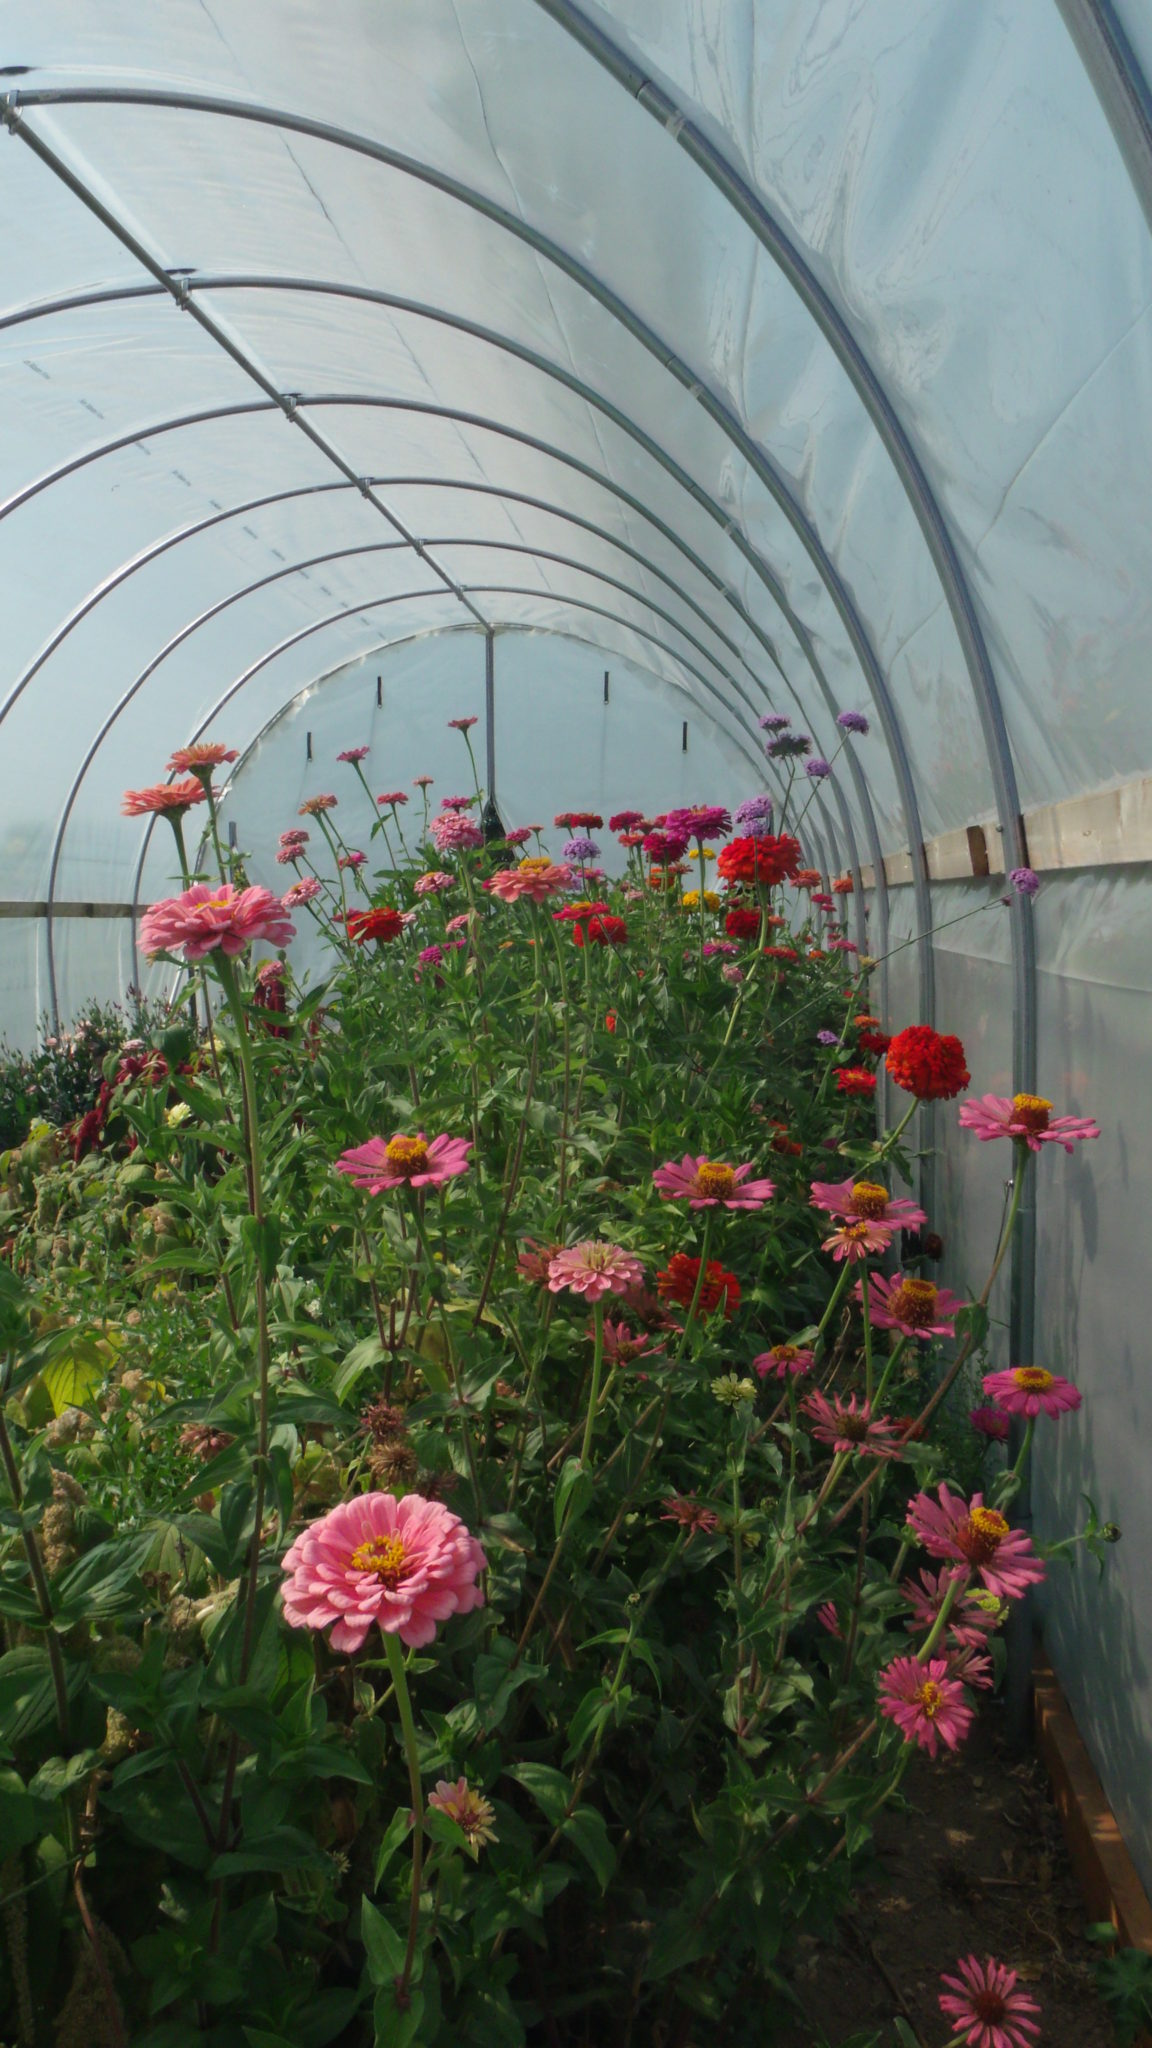 Zinnias in the hoophouse